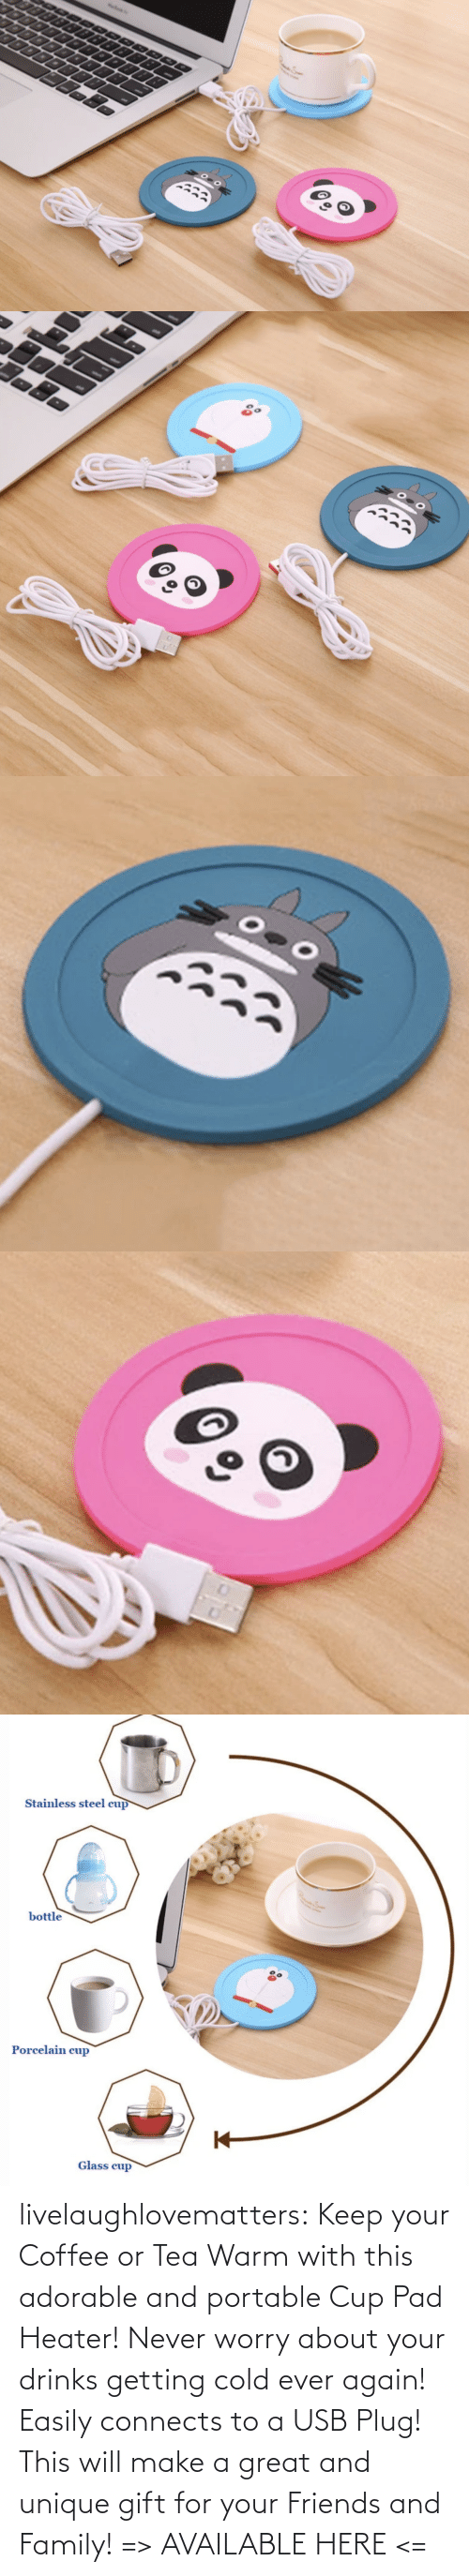 Adorable: livelaughlovematters: Keep your Coffee or Tea Warm with this adorable and portable Cup Pad Heater! Never worry about your drinks getting cold ever again! Easily connects to a USB Plug! This will make a great and unique gift for your Friends and Family! => AVAILABLE HERE <=